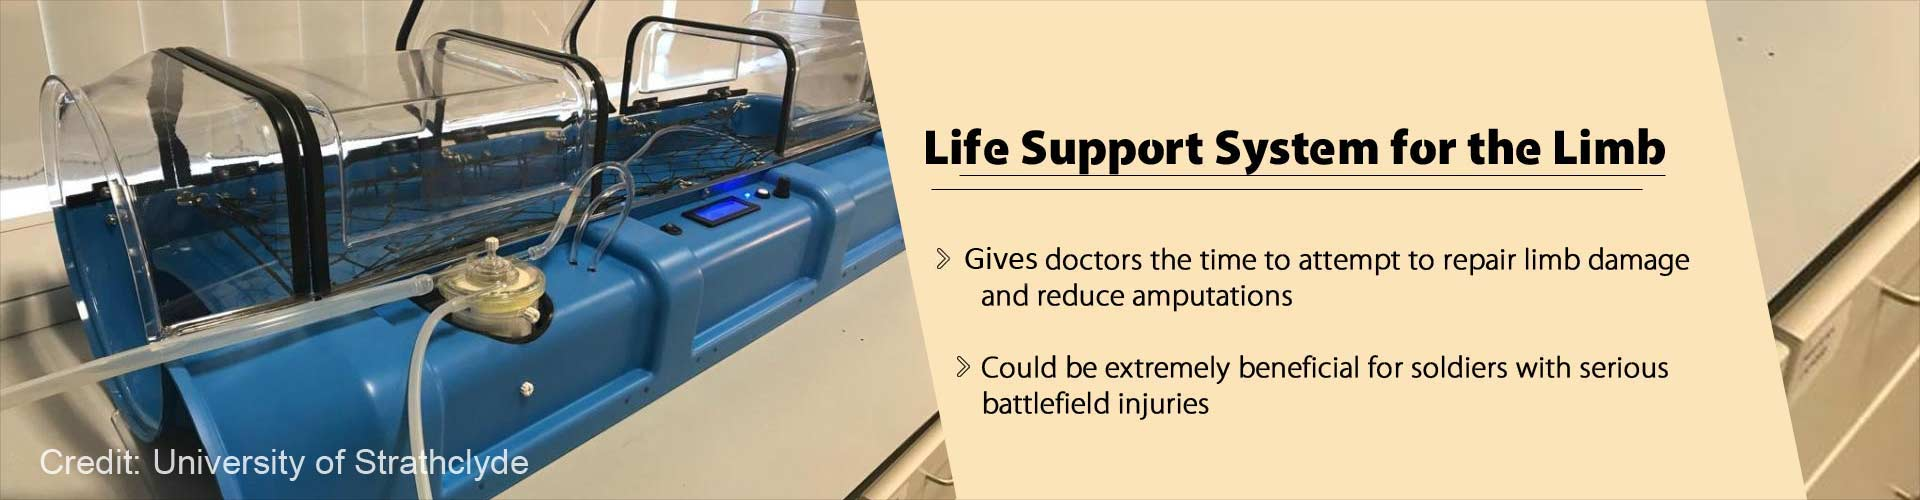 Newly Invented '˜Life Support System for The Limb' Could Avoid Amputations from Battlefield Injuries